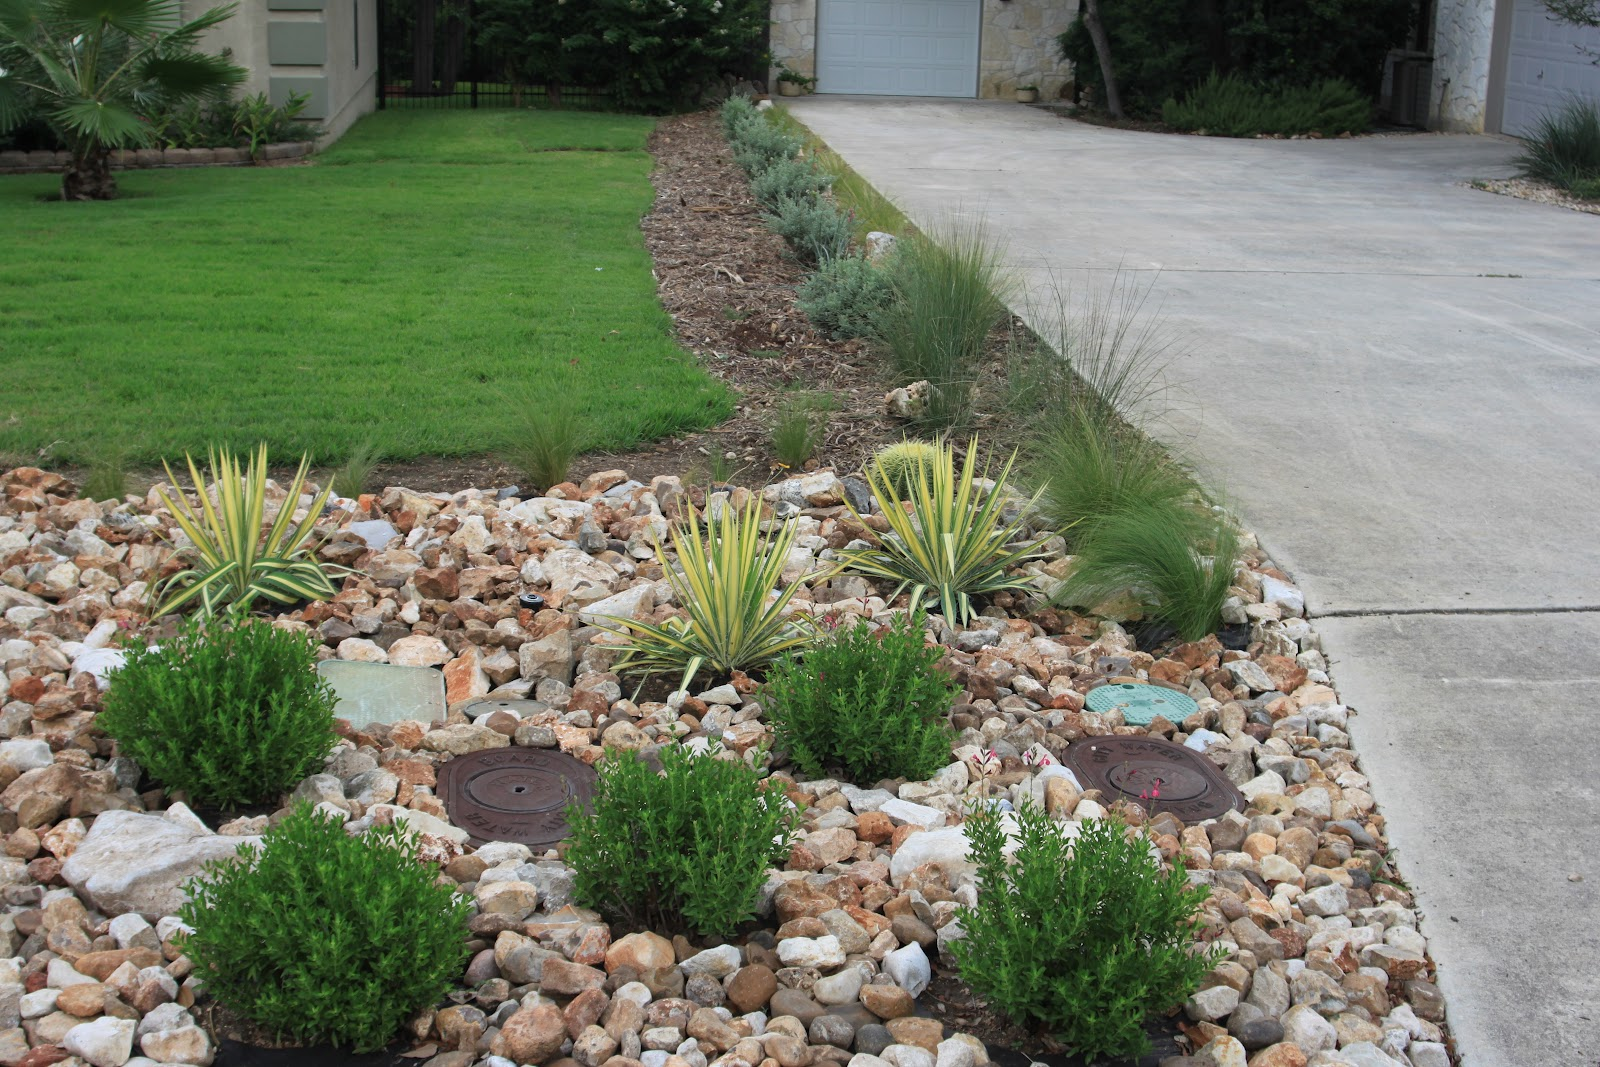 Willing landscape front lawn landscaping ideas using for Using grasses in garden design